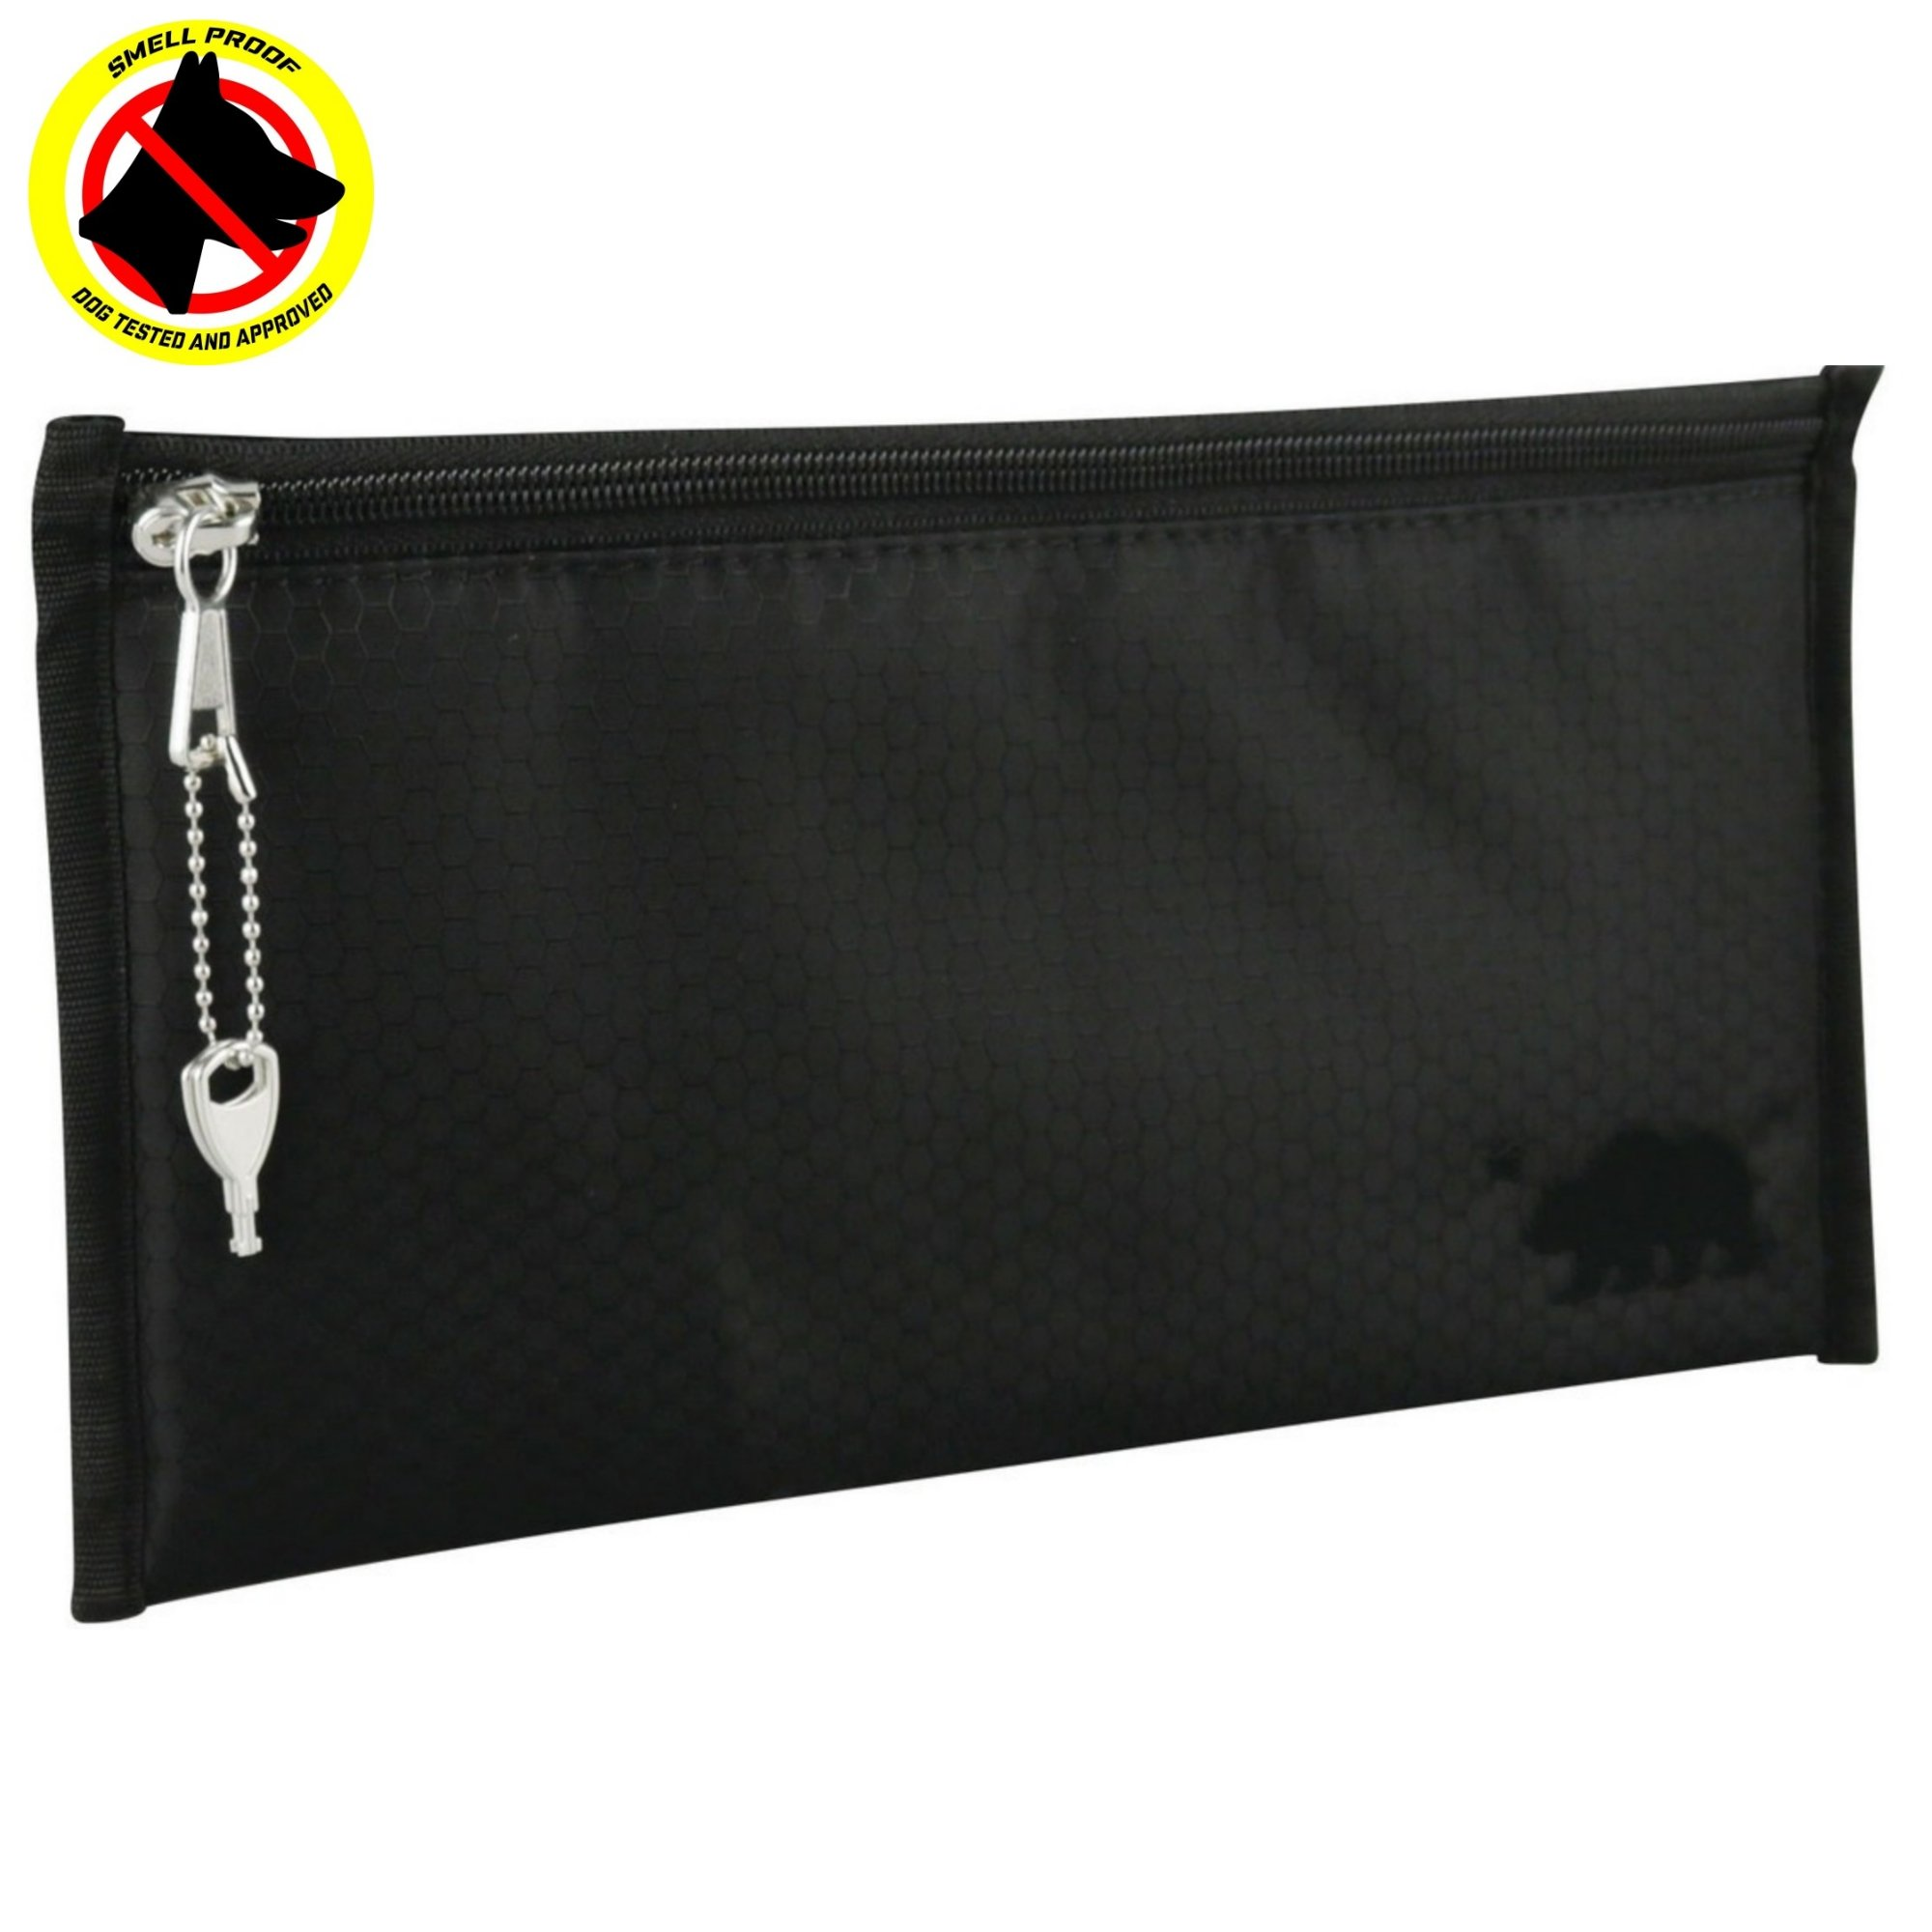 Cali Crusher 100% Smell Proof Pouch w/Locking Key (11''x6'') (Black)